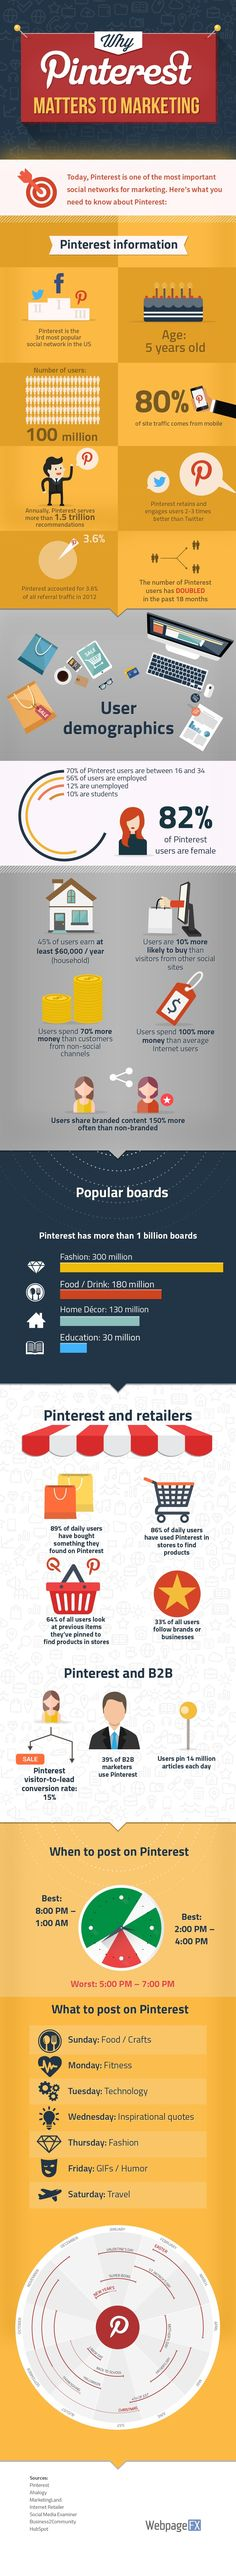 Why Pinterest Matters to Marketing [Infographic]   Social Media Today